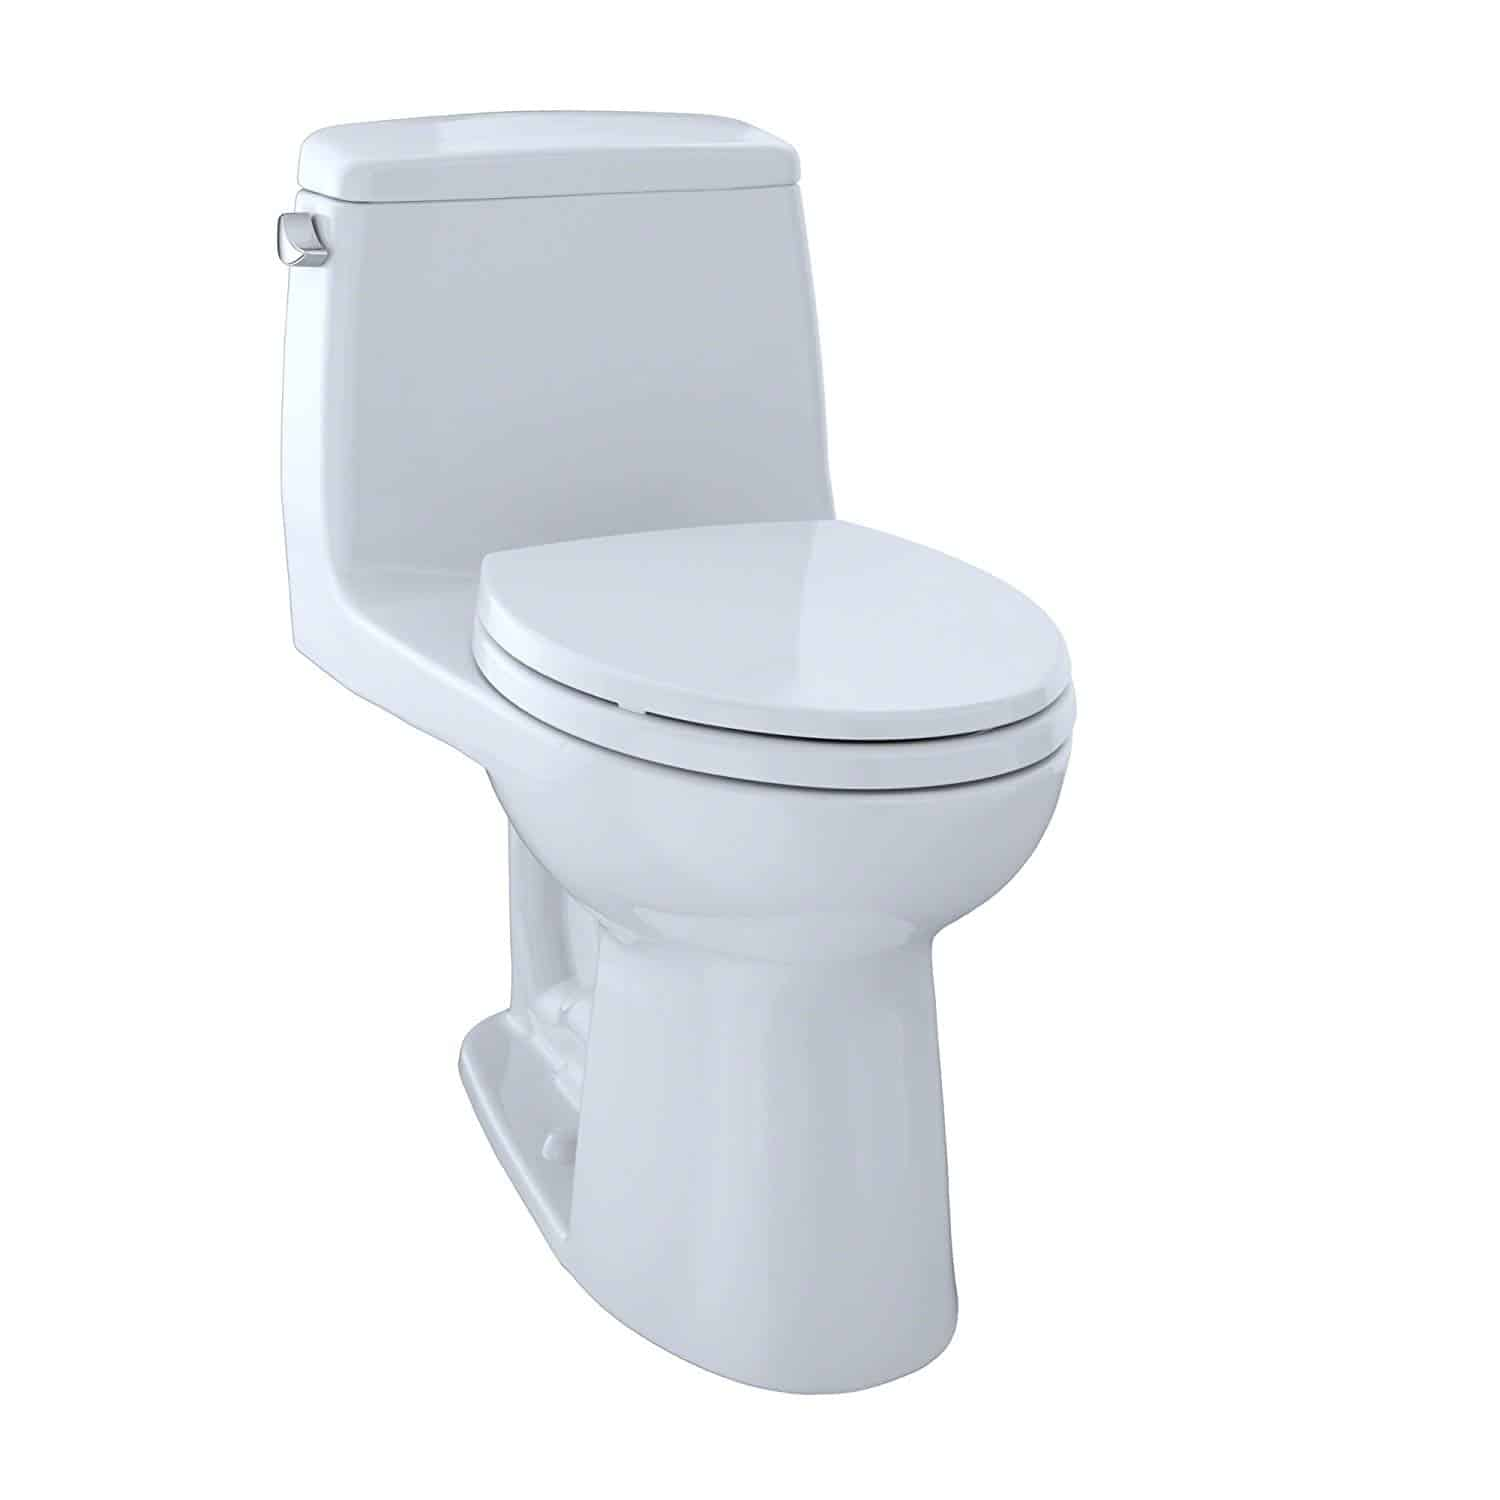 10 Best Flushing Toilets Detailed Guide And Reviews